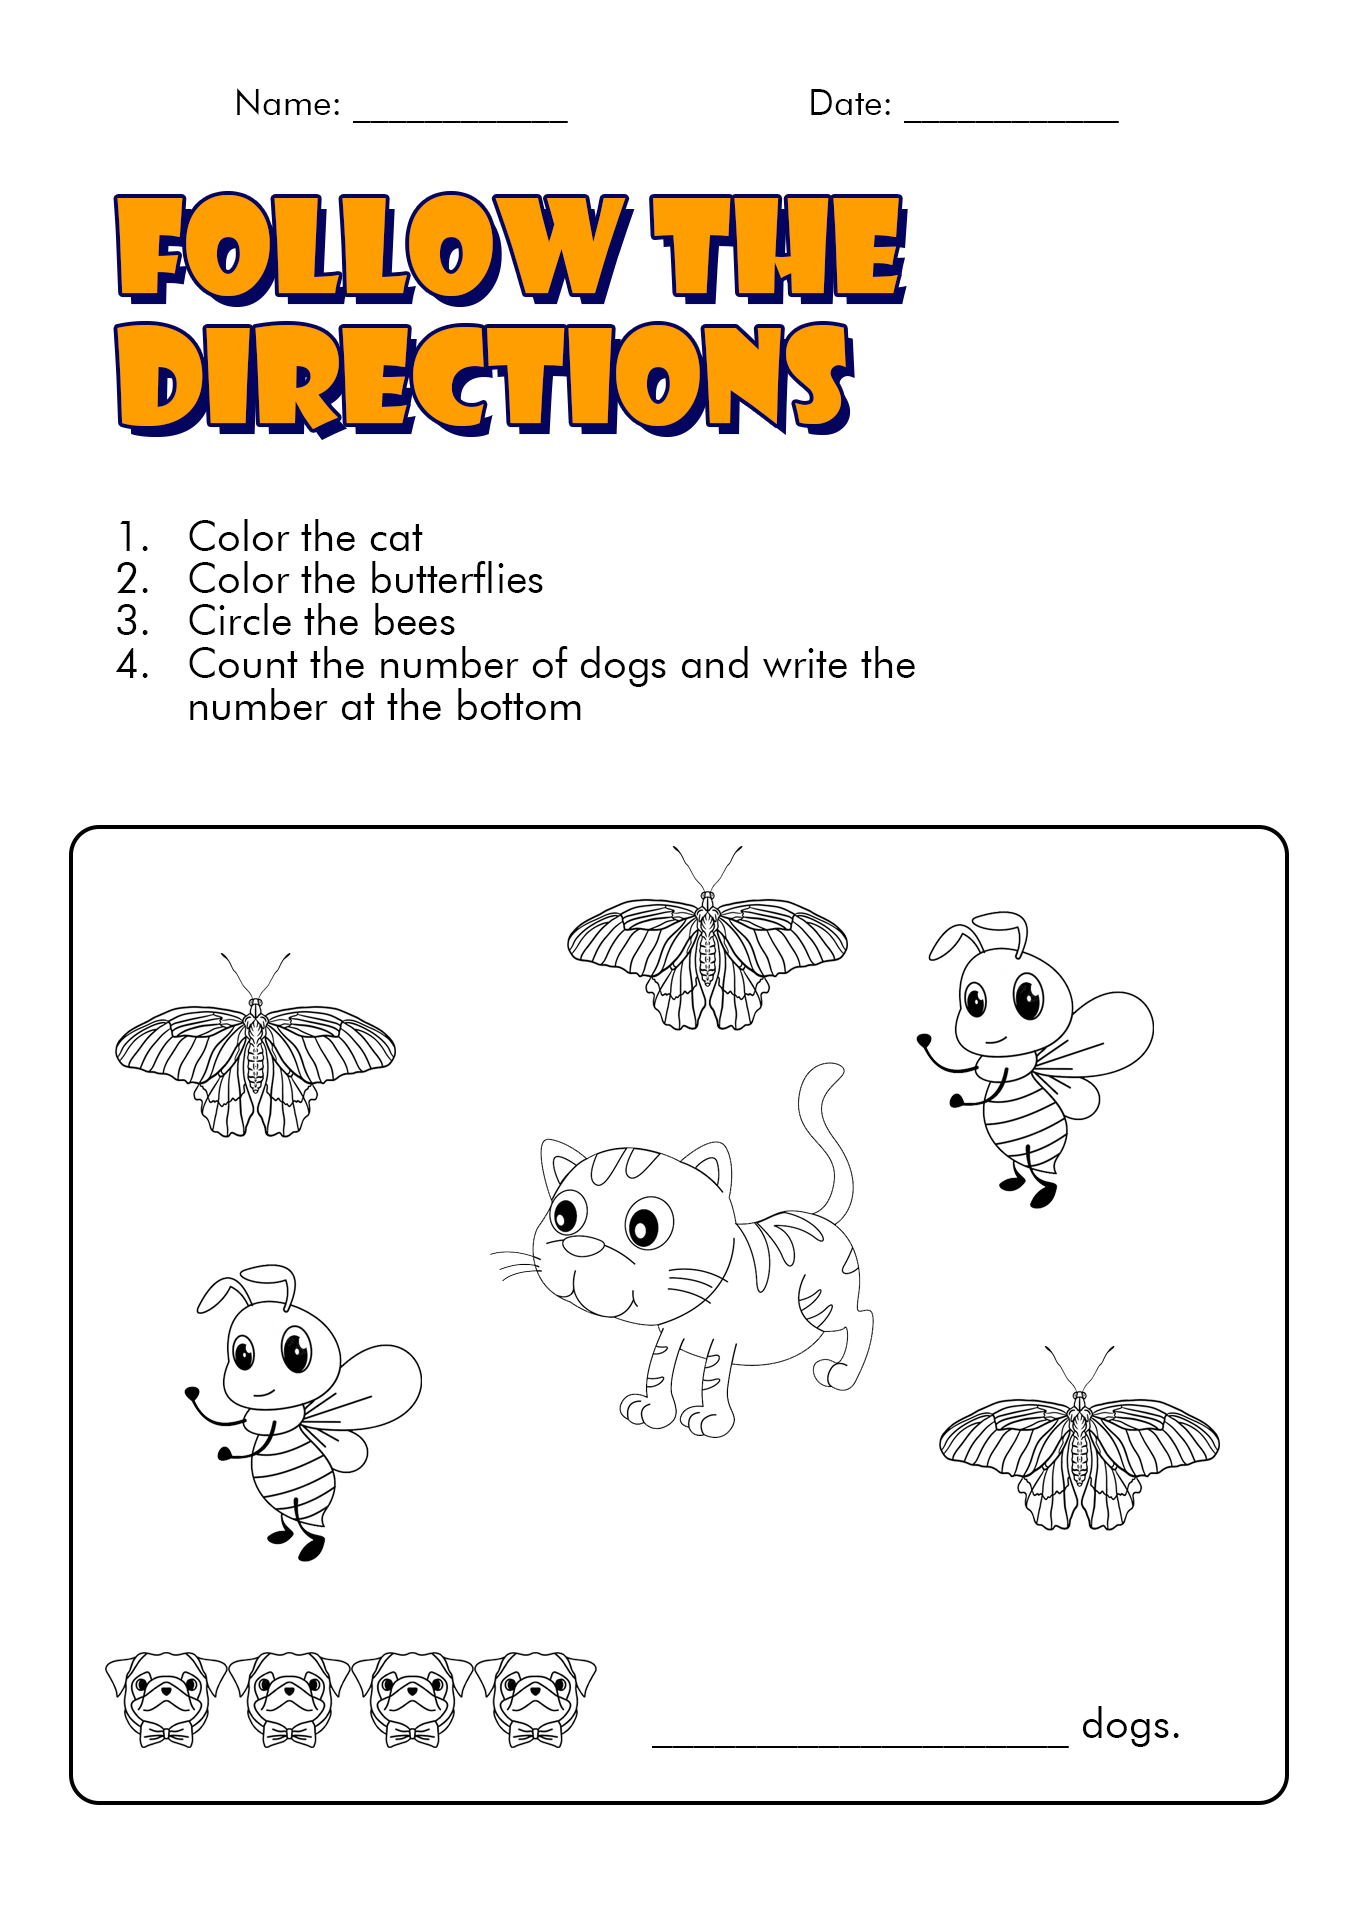 15 Best Images of Following Directions First Grade